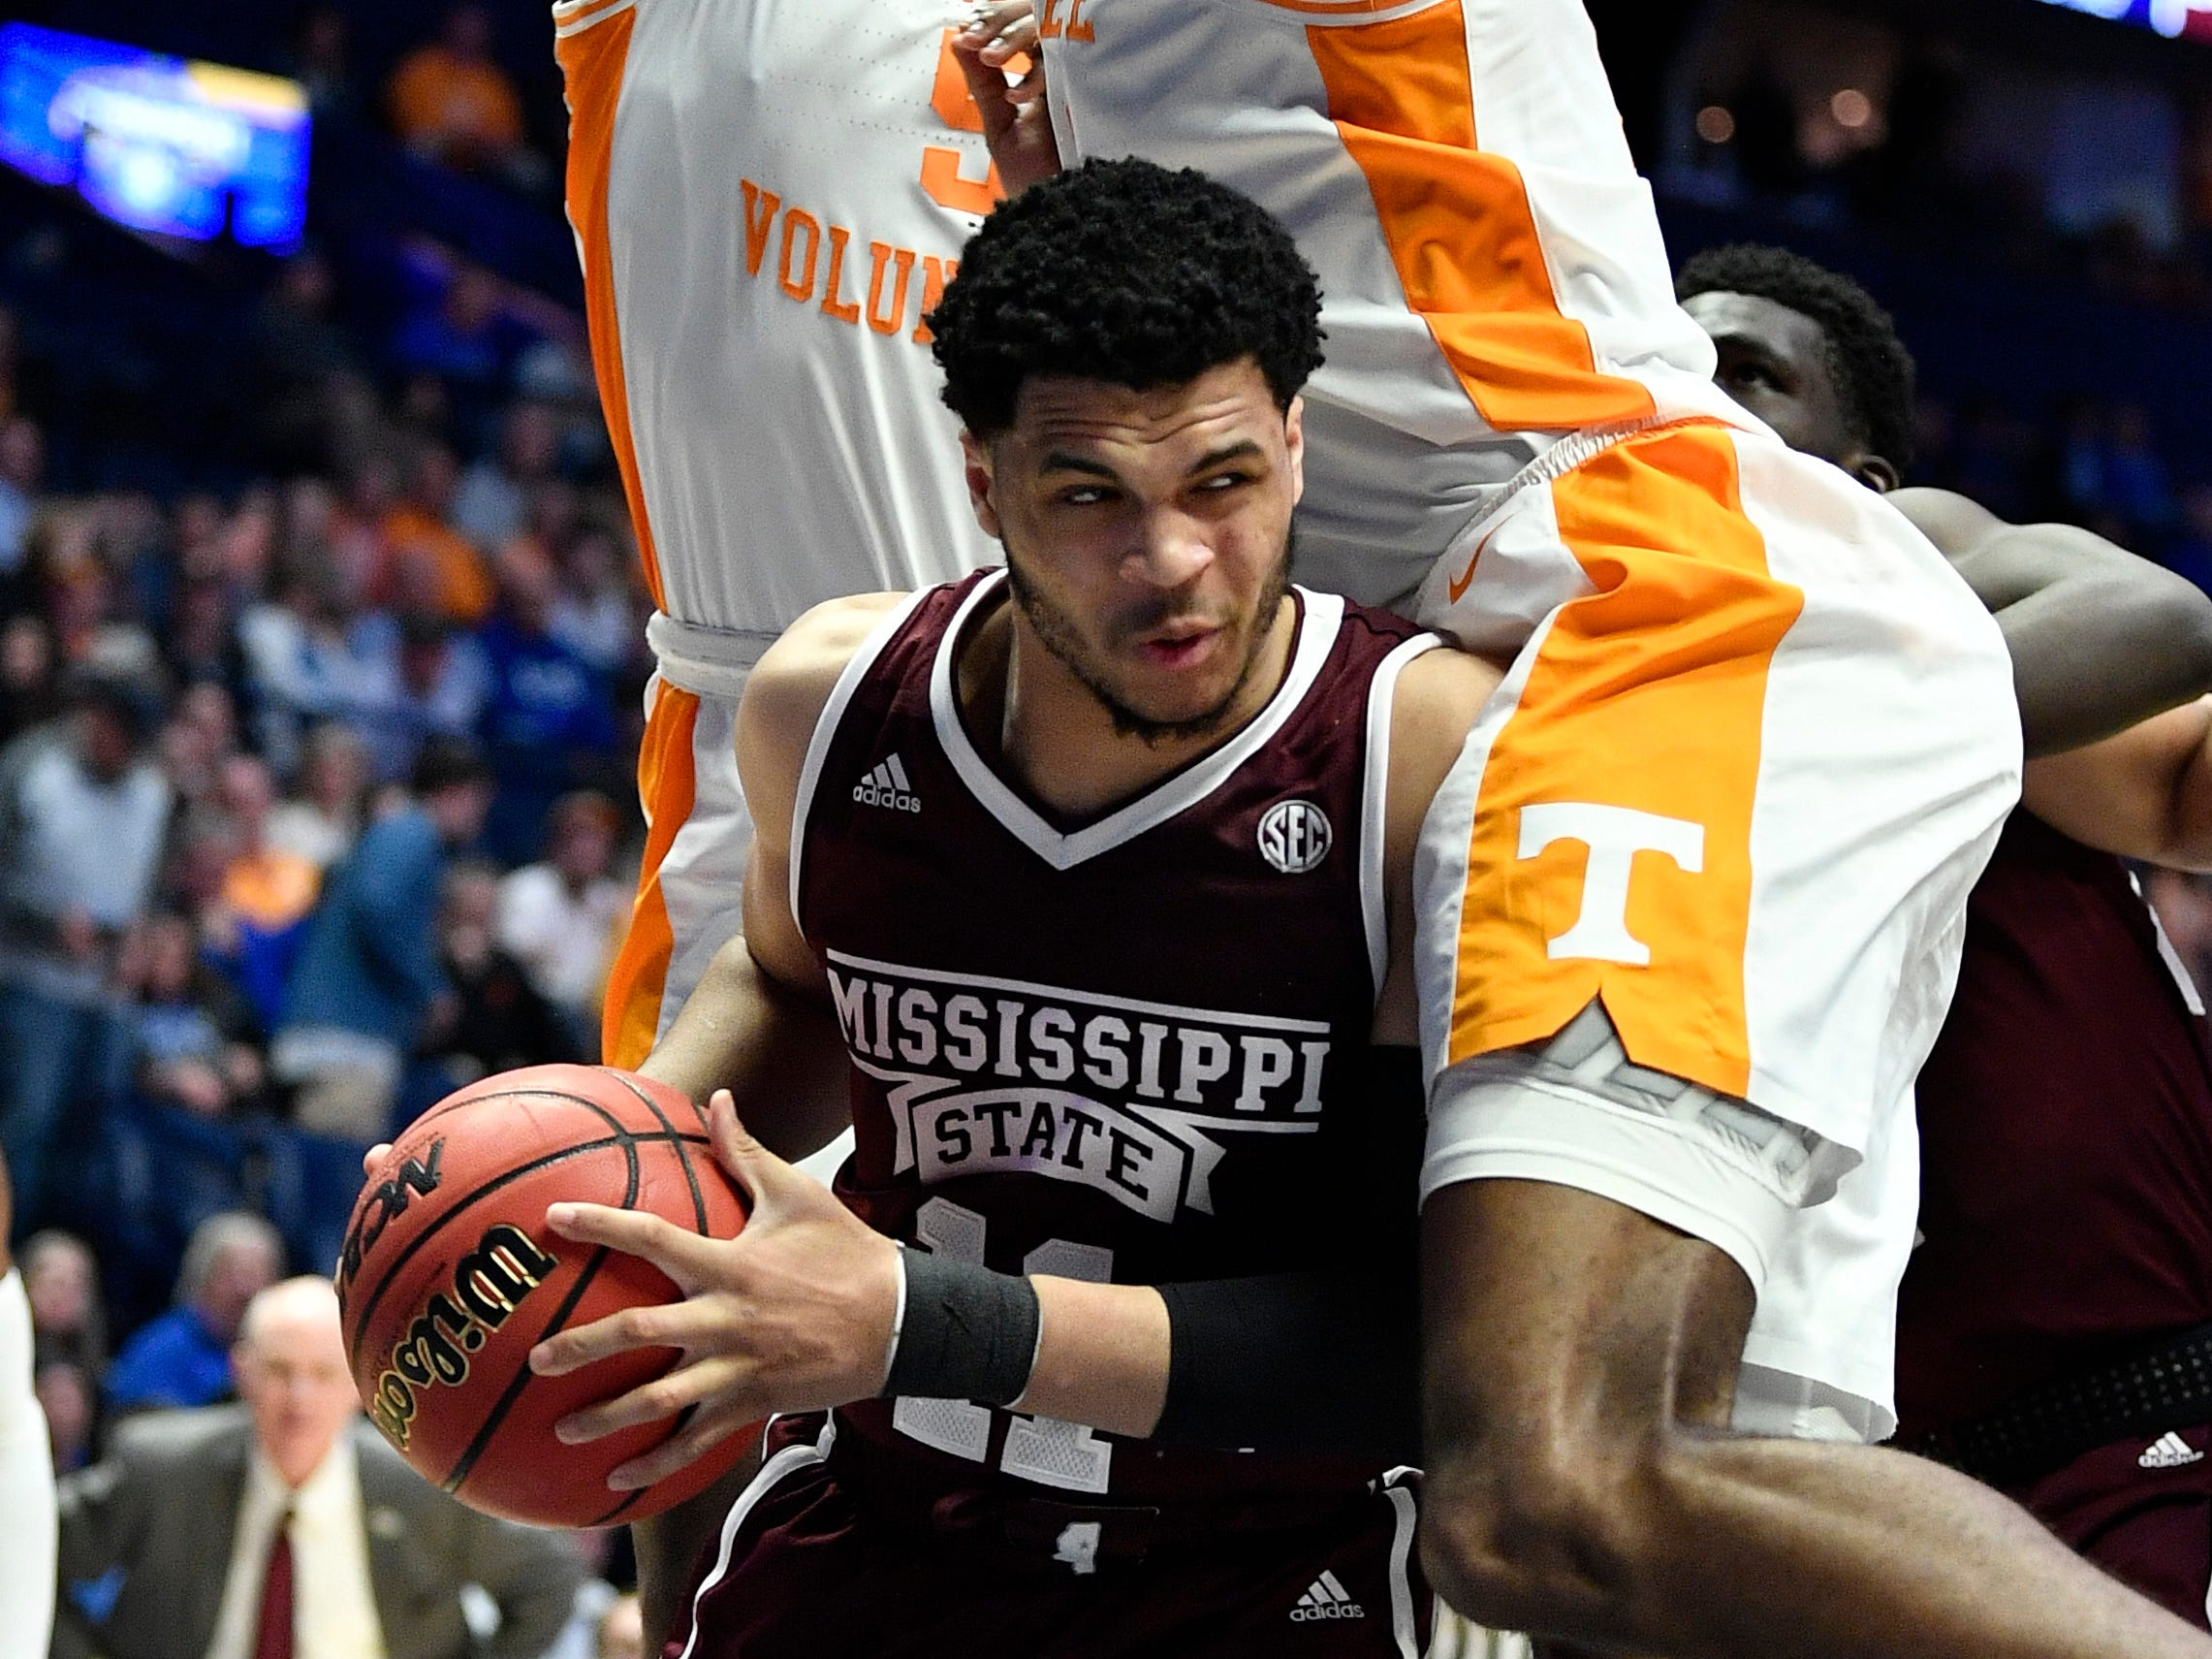 Mississippi State guard Quinndary Weatherspoon (11) gets sandwiched by Tennessee defenders during the second half of the SEC Men's Basketball Tournament game at Bridgestone Arena in Nashville, Tenn., Friday, March 15, 2019.